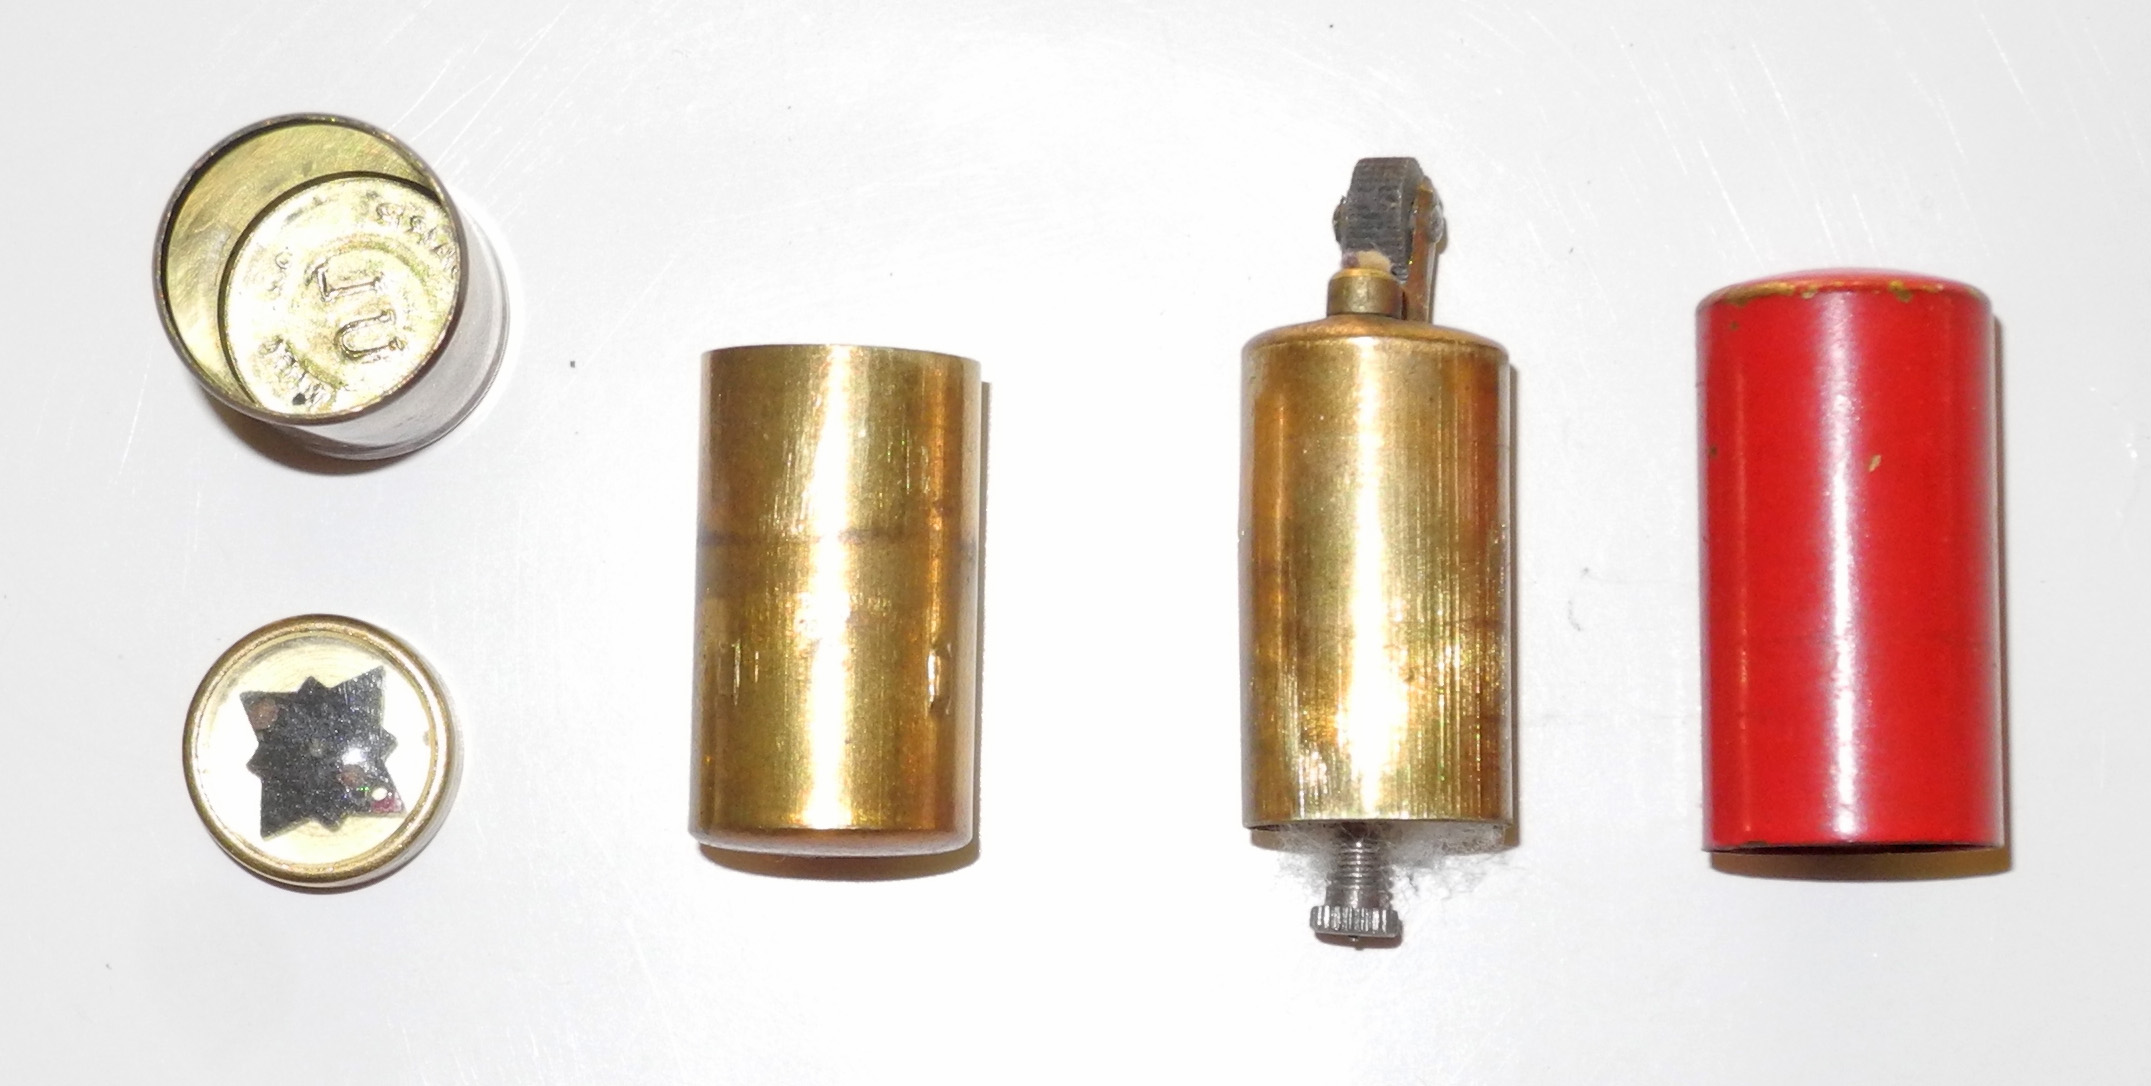 RAF cigarette lighter with concealed compass